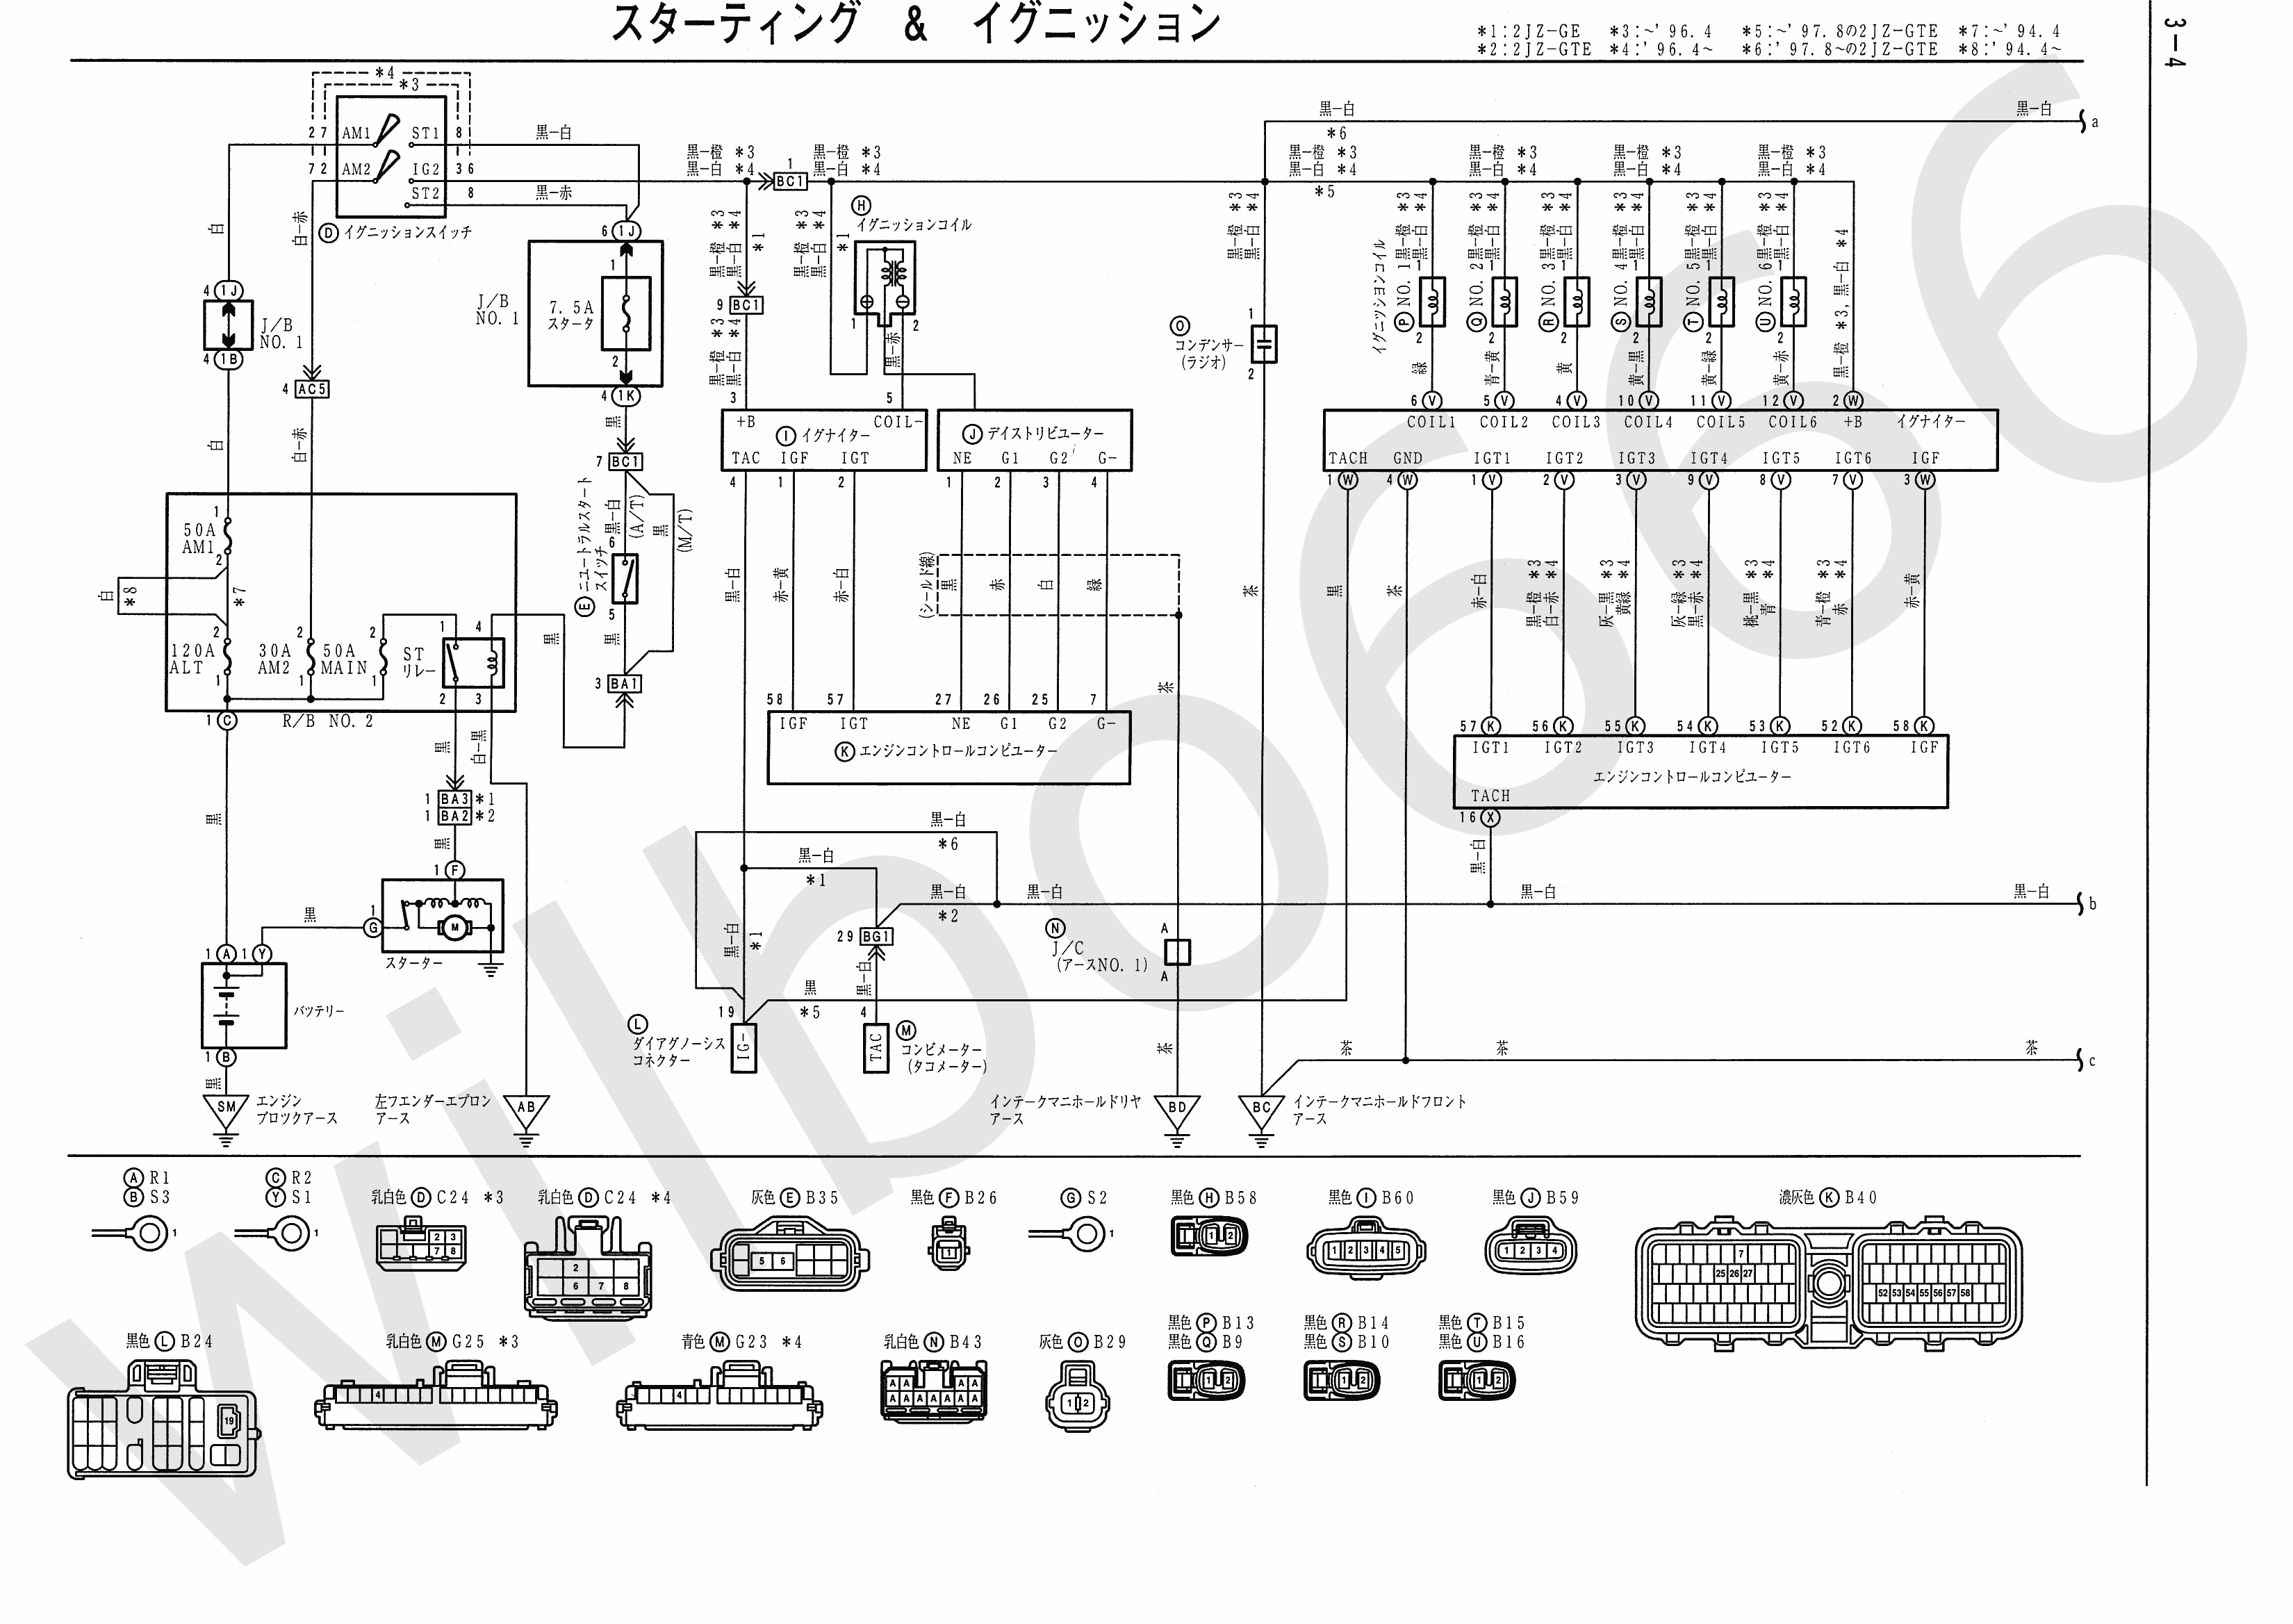 JZA80 Electrical Wiring Diagram 6742505 3 4?ssl\\\\\\\\\\\\\\\\\\\\\\\\\\\\\\\\\\\\\\\\\\\\\\\\\\\\\\\\\\\\\\\\\\\\\\\\\\\\\\\\\\\\\\\\\\\\\\\\\\\\\\\\\\\\\\\\\\\\\\\\\\\\=1 amazing 3sgte wiring diagram gallery wiring schematic tvservice us autronic sm4 wiring diagram at cos-gaming.co